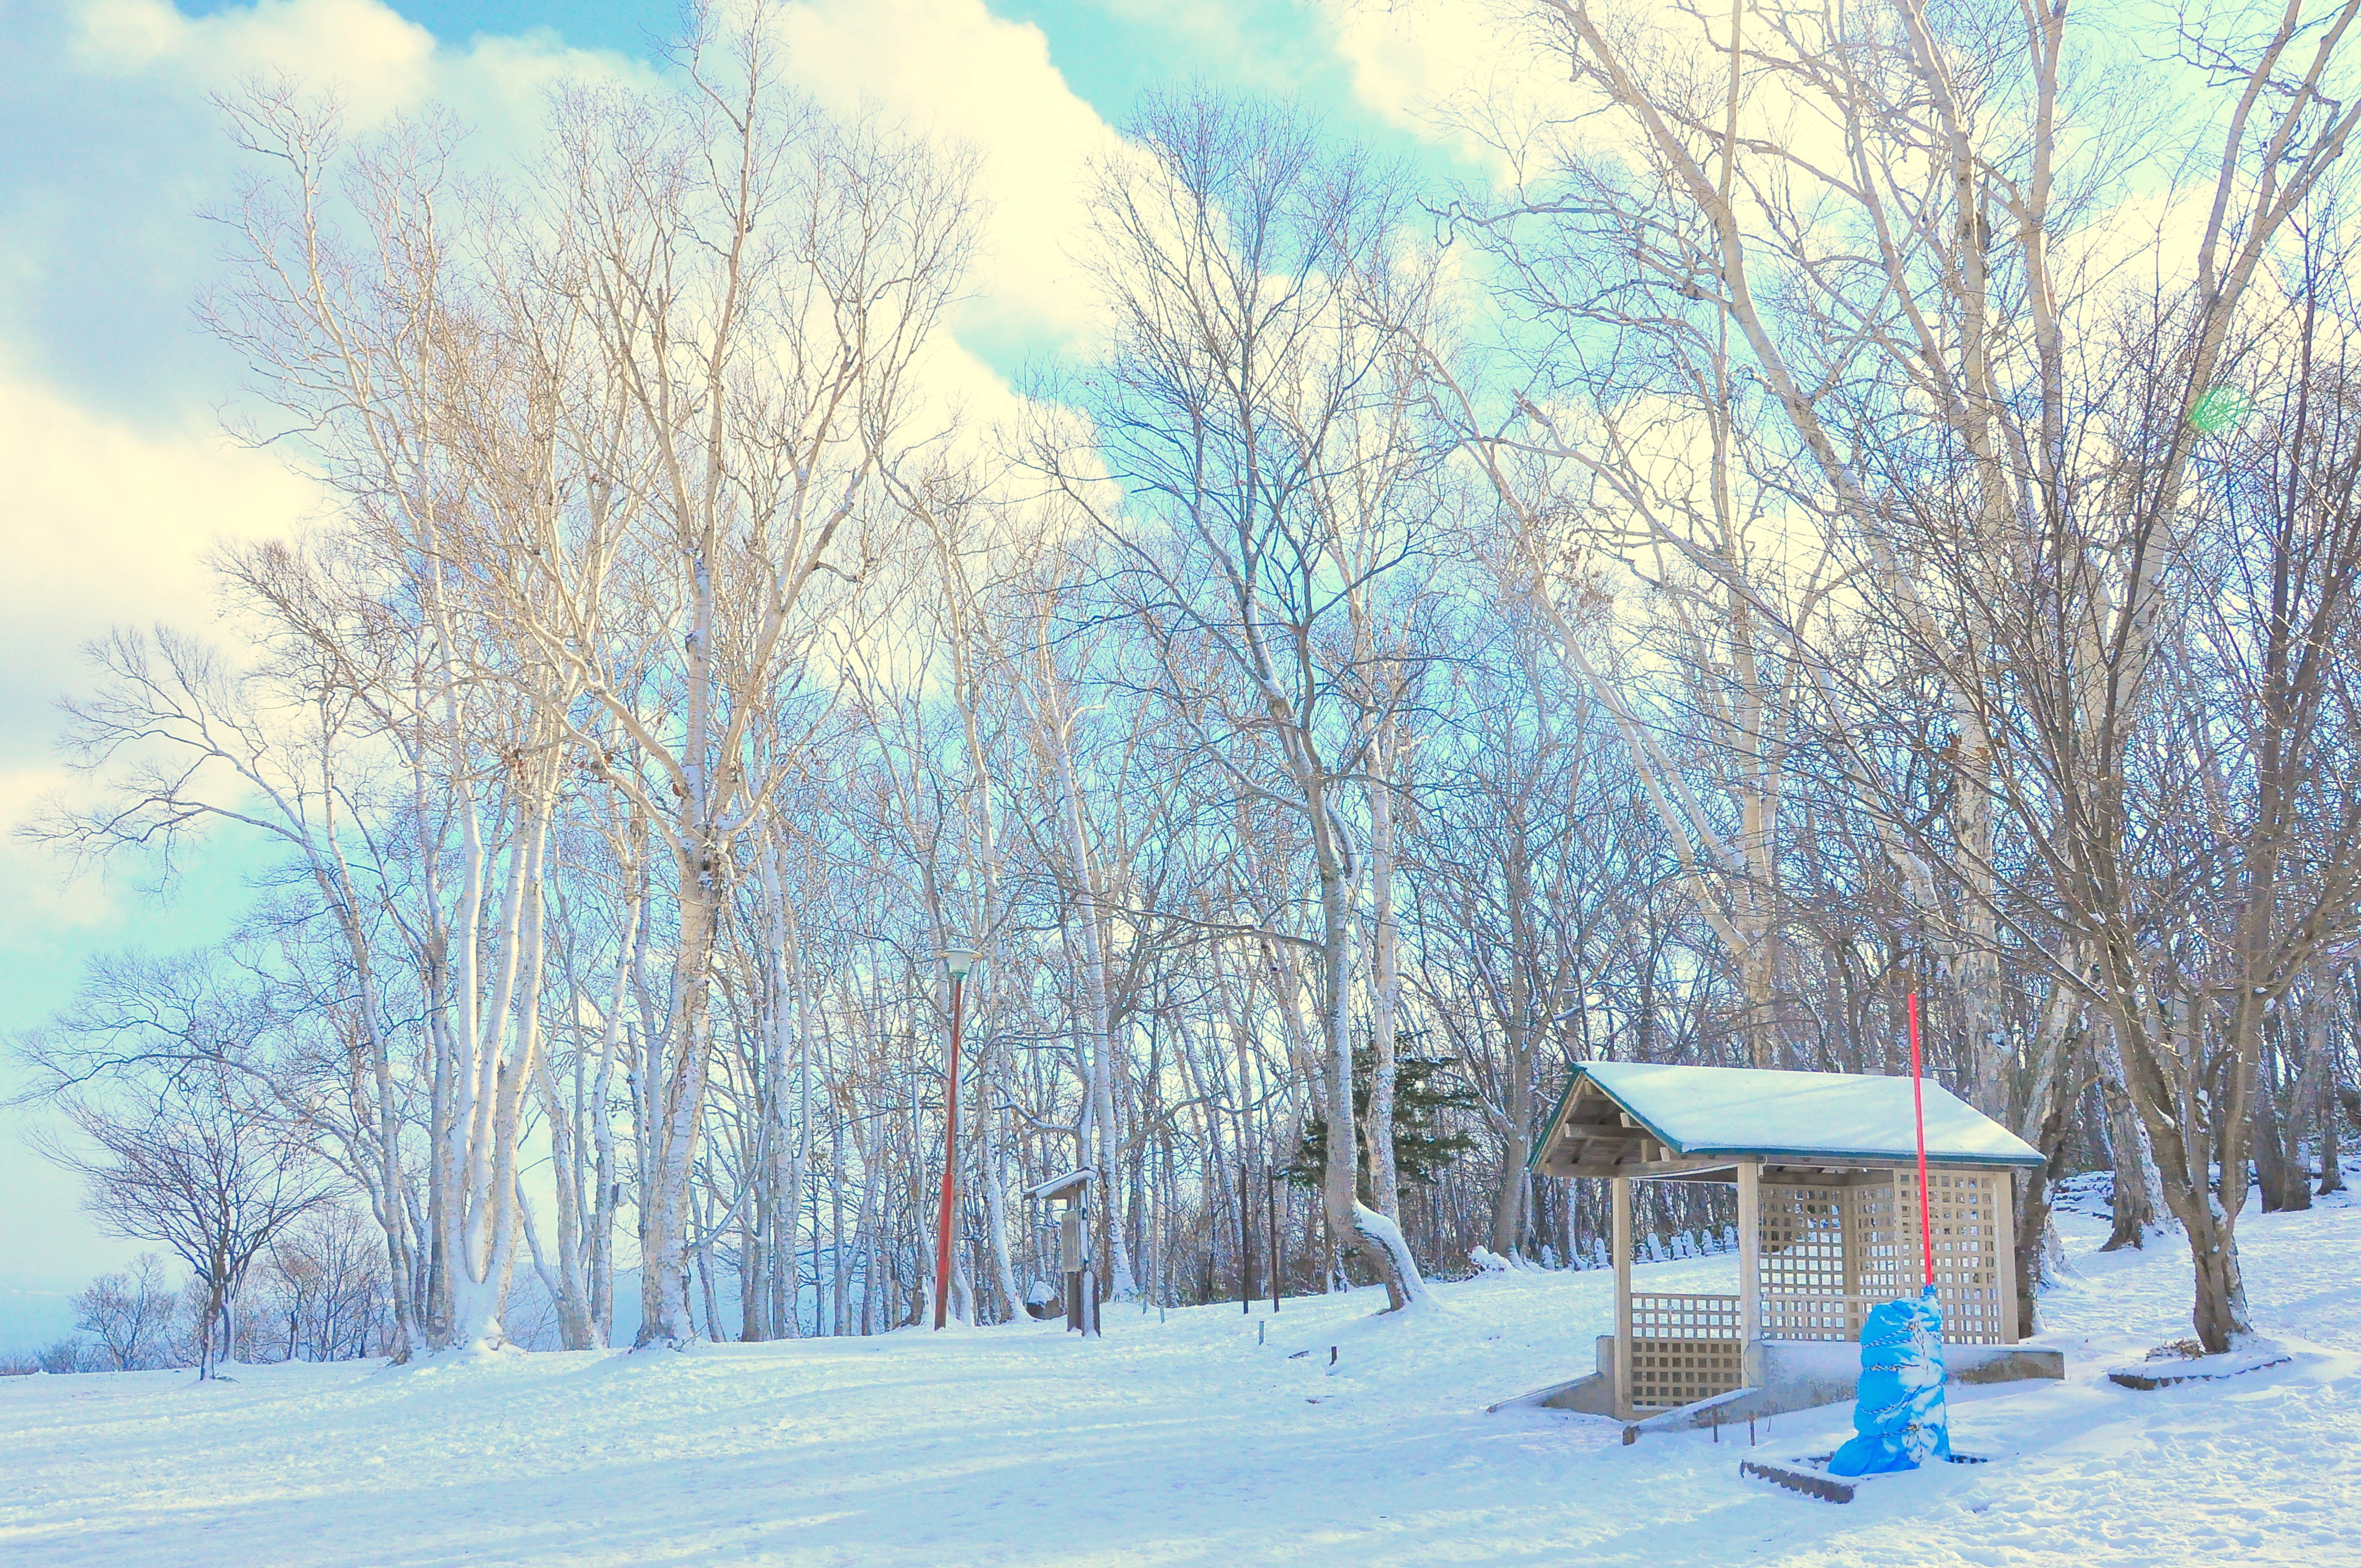 Snow Field Near in Forest, Branch, Park, Wood, Winter, HQ Photo